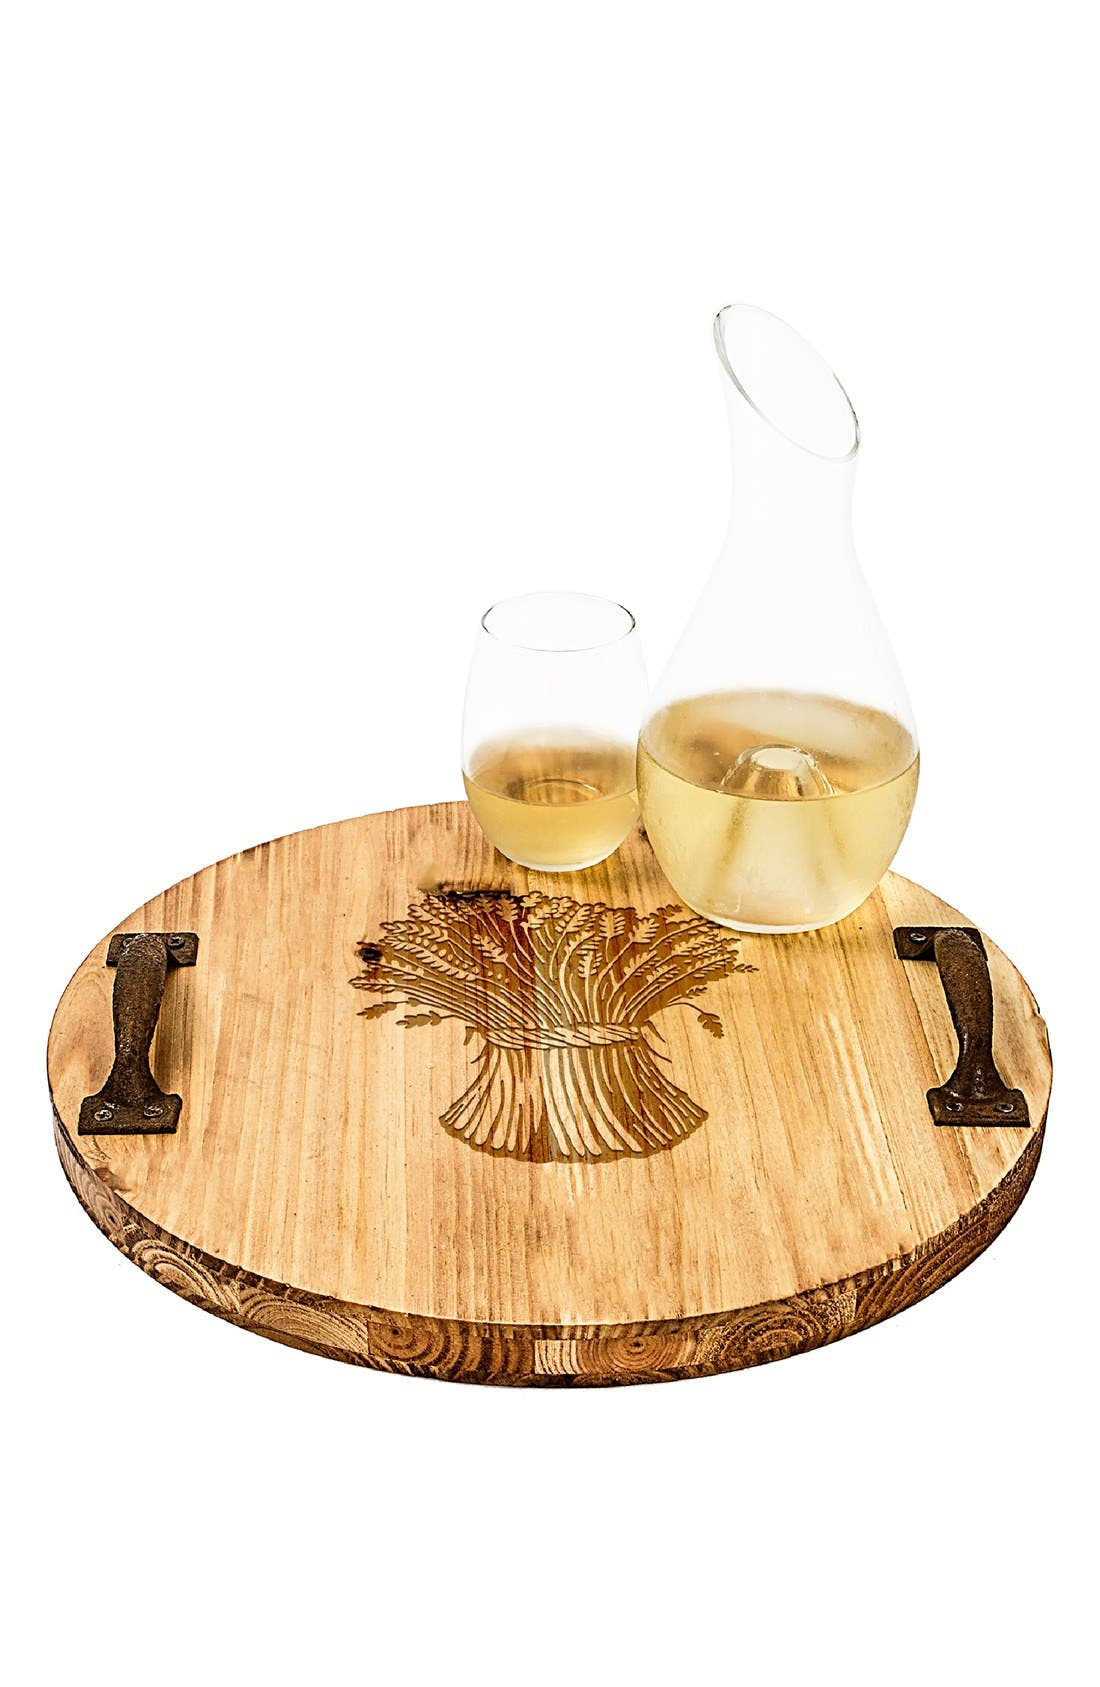 'Wheat Stalk' Rustic Wooden Tray,                         Main,                         color, Brown